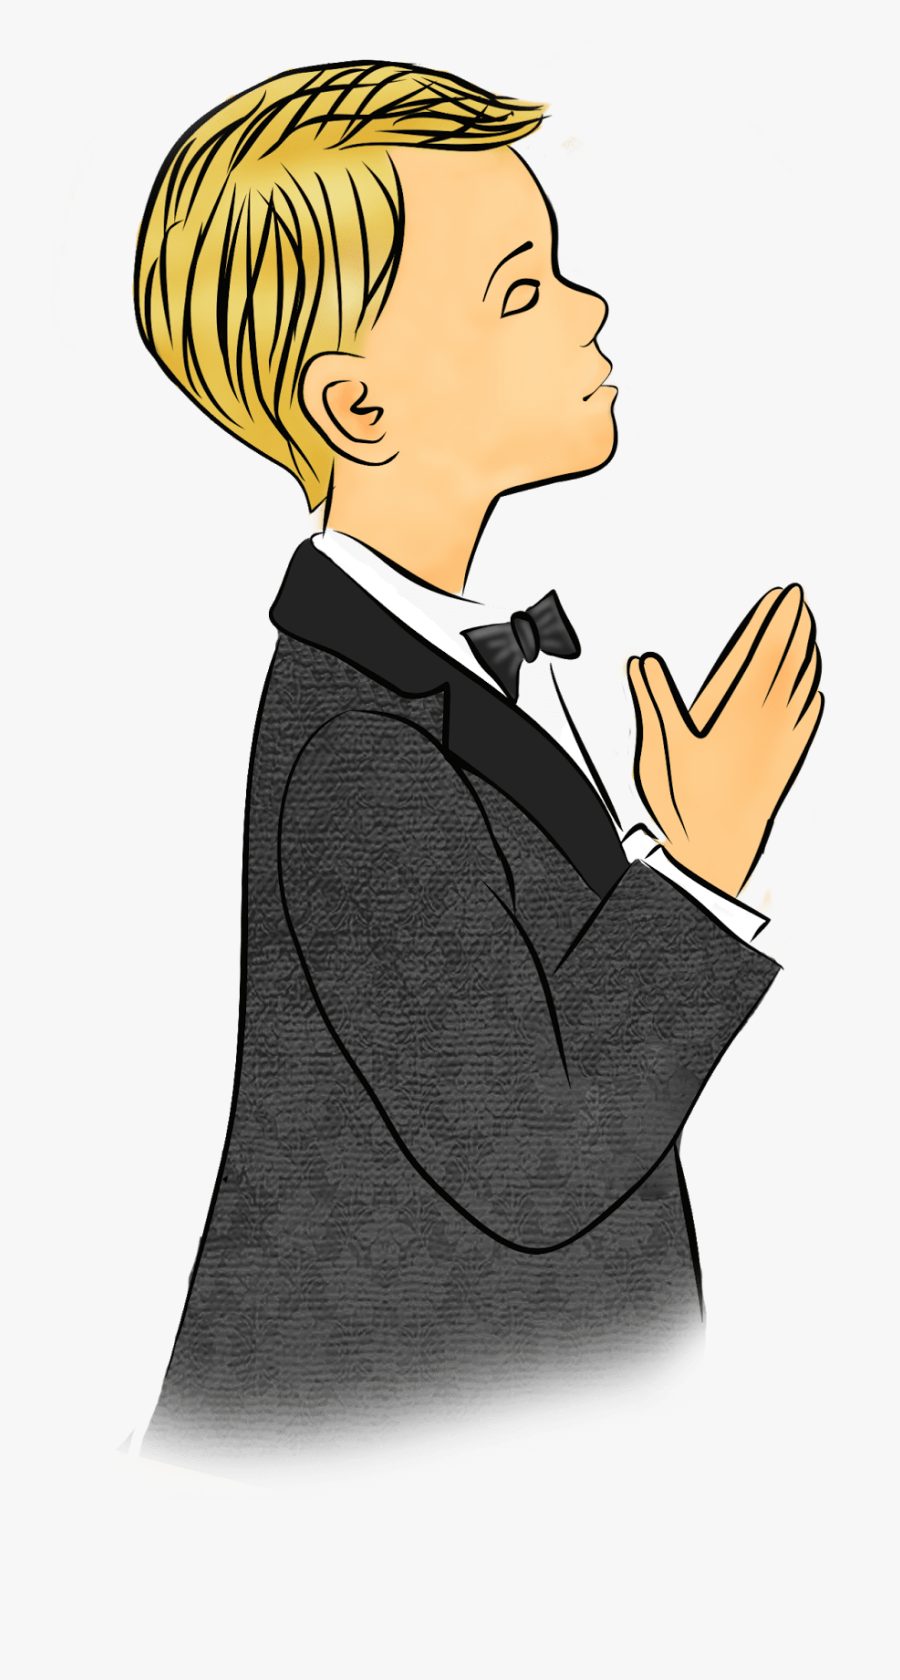 First Holy Communion Boy Clipart, Transparent Clipart